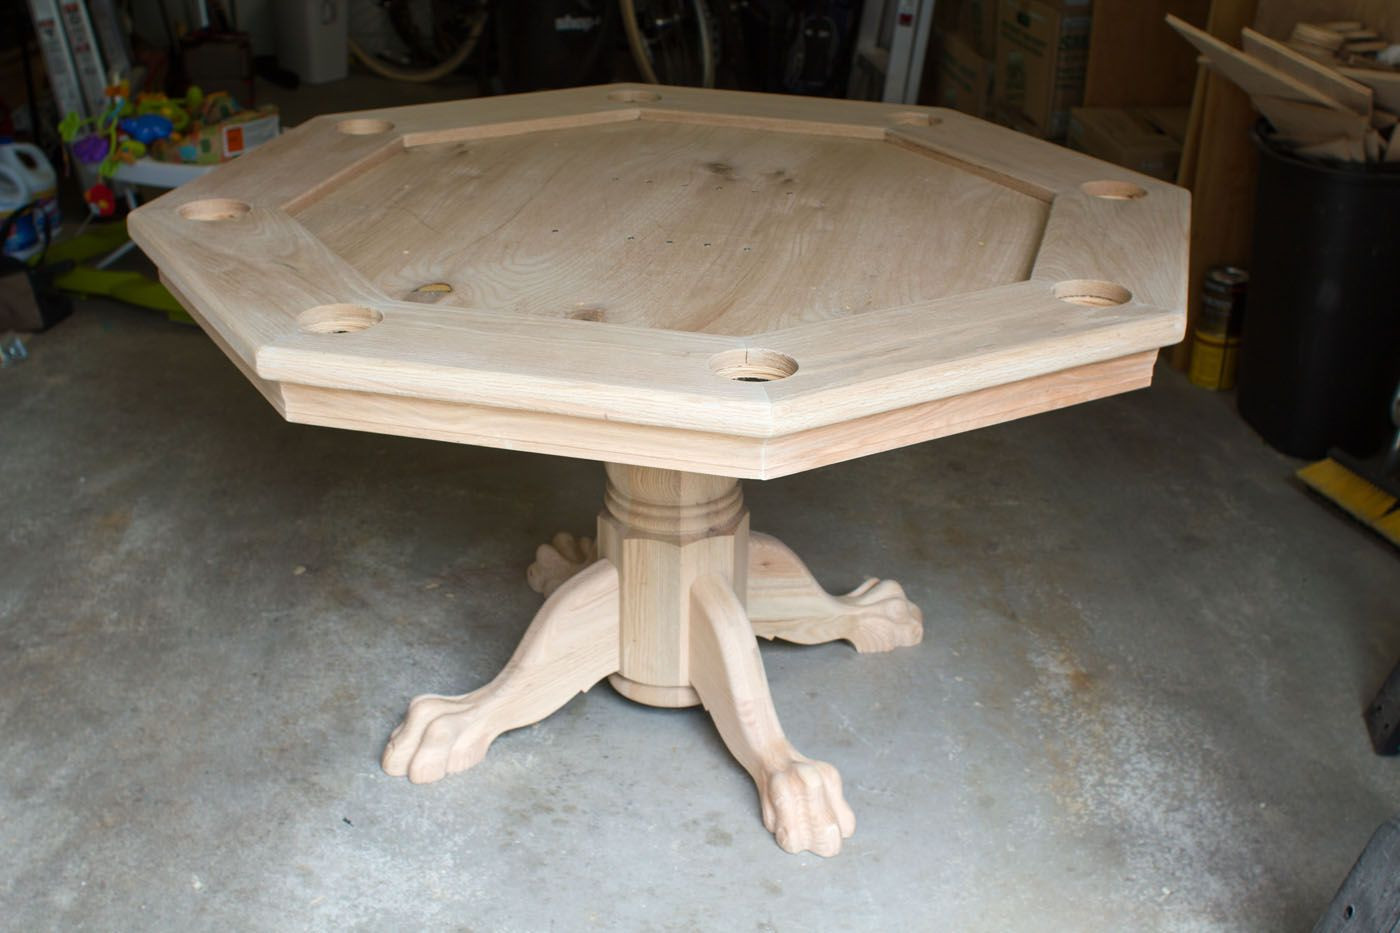 Best ideas about DIY Gaming Table Plans . Save or Pin Diy octagon table plans inkra Now.